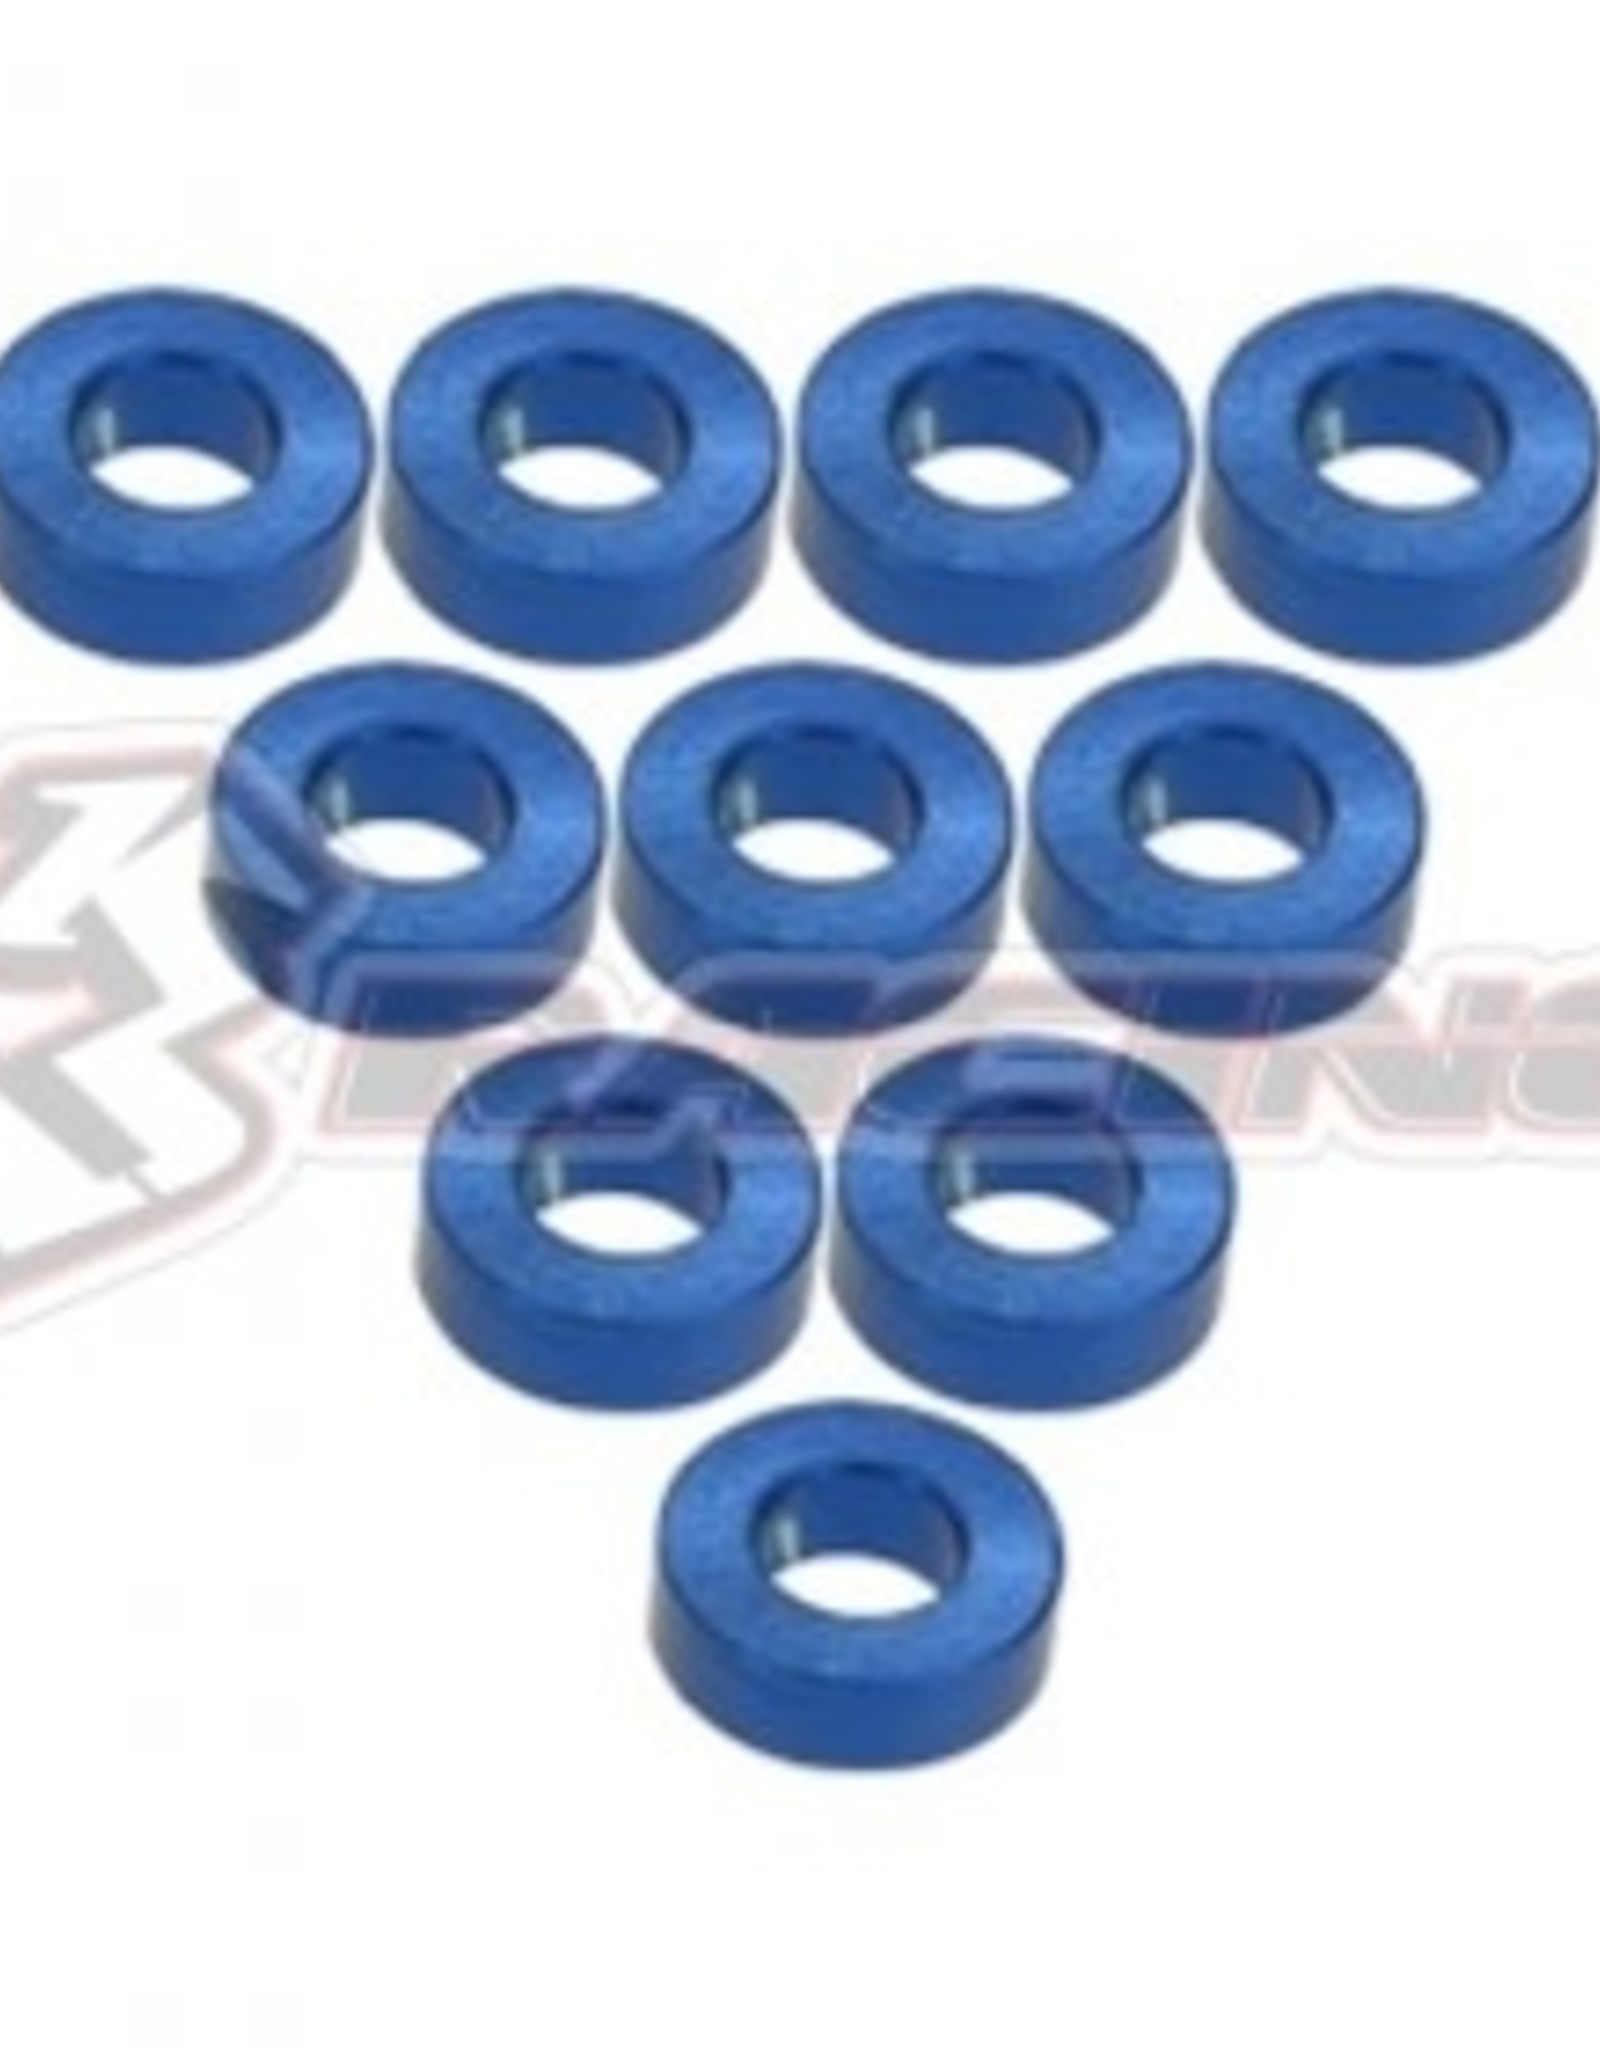 3Racing 3RAC-WF320/BU - Aluminium M3 Flat Washer 2.0mm 10Pcs Blue - 3Racing